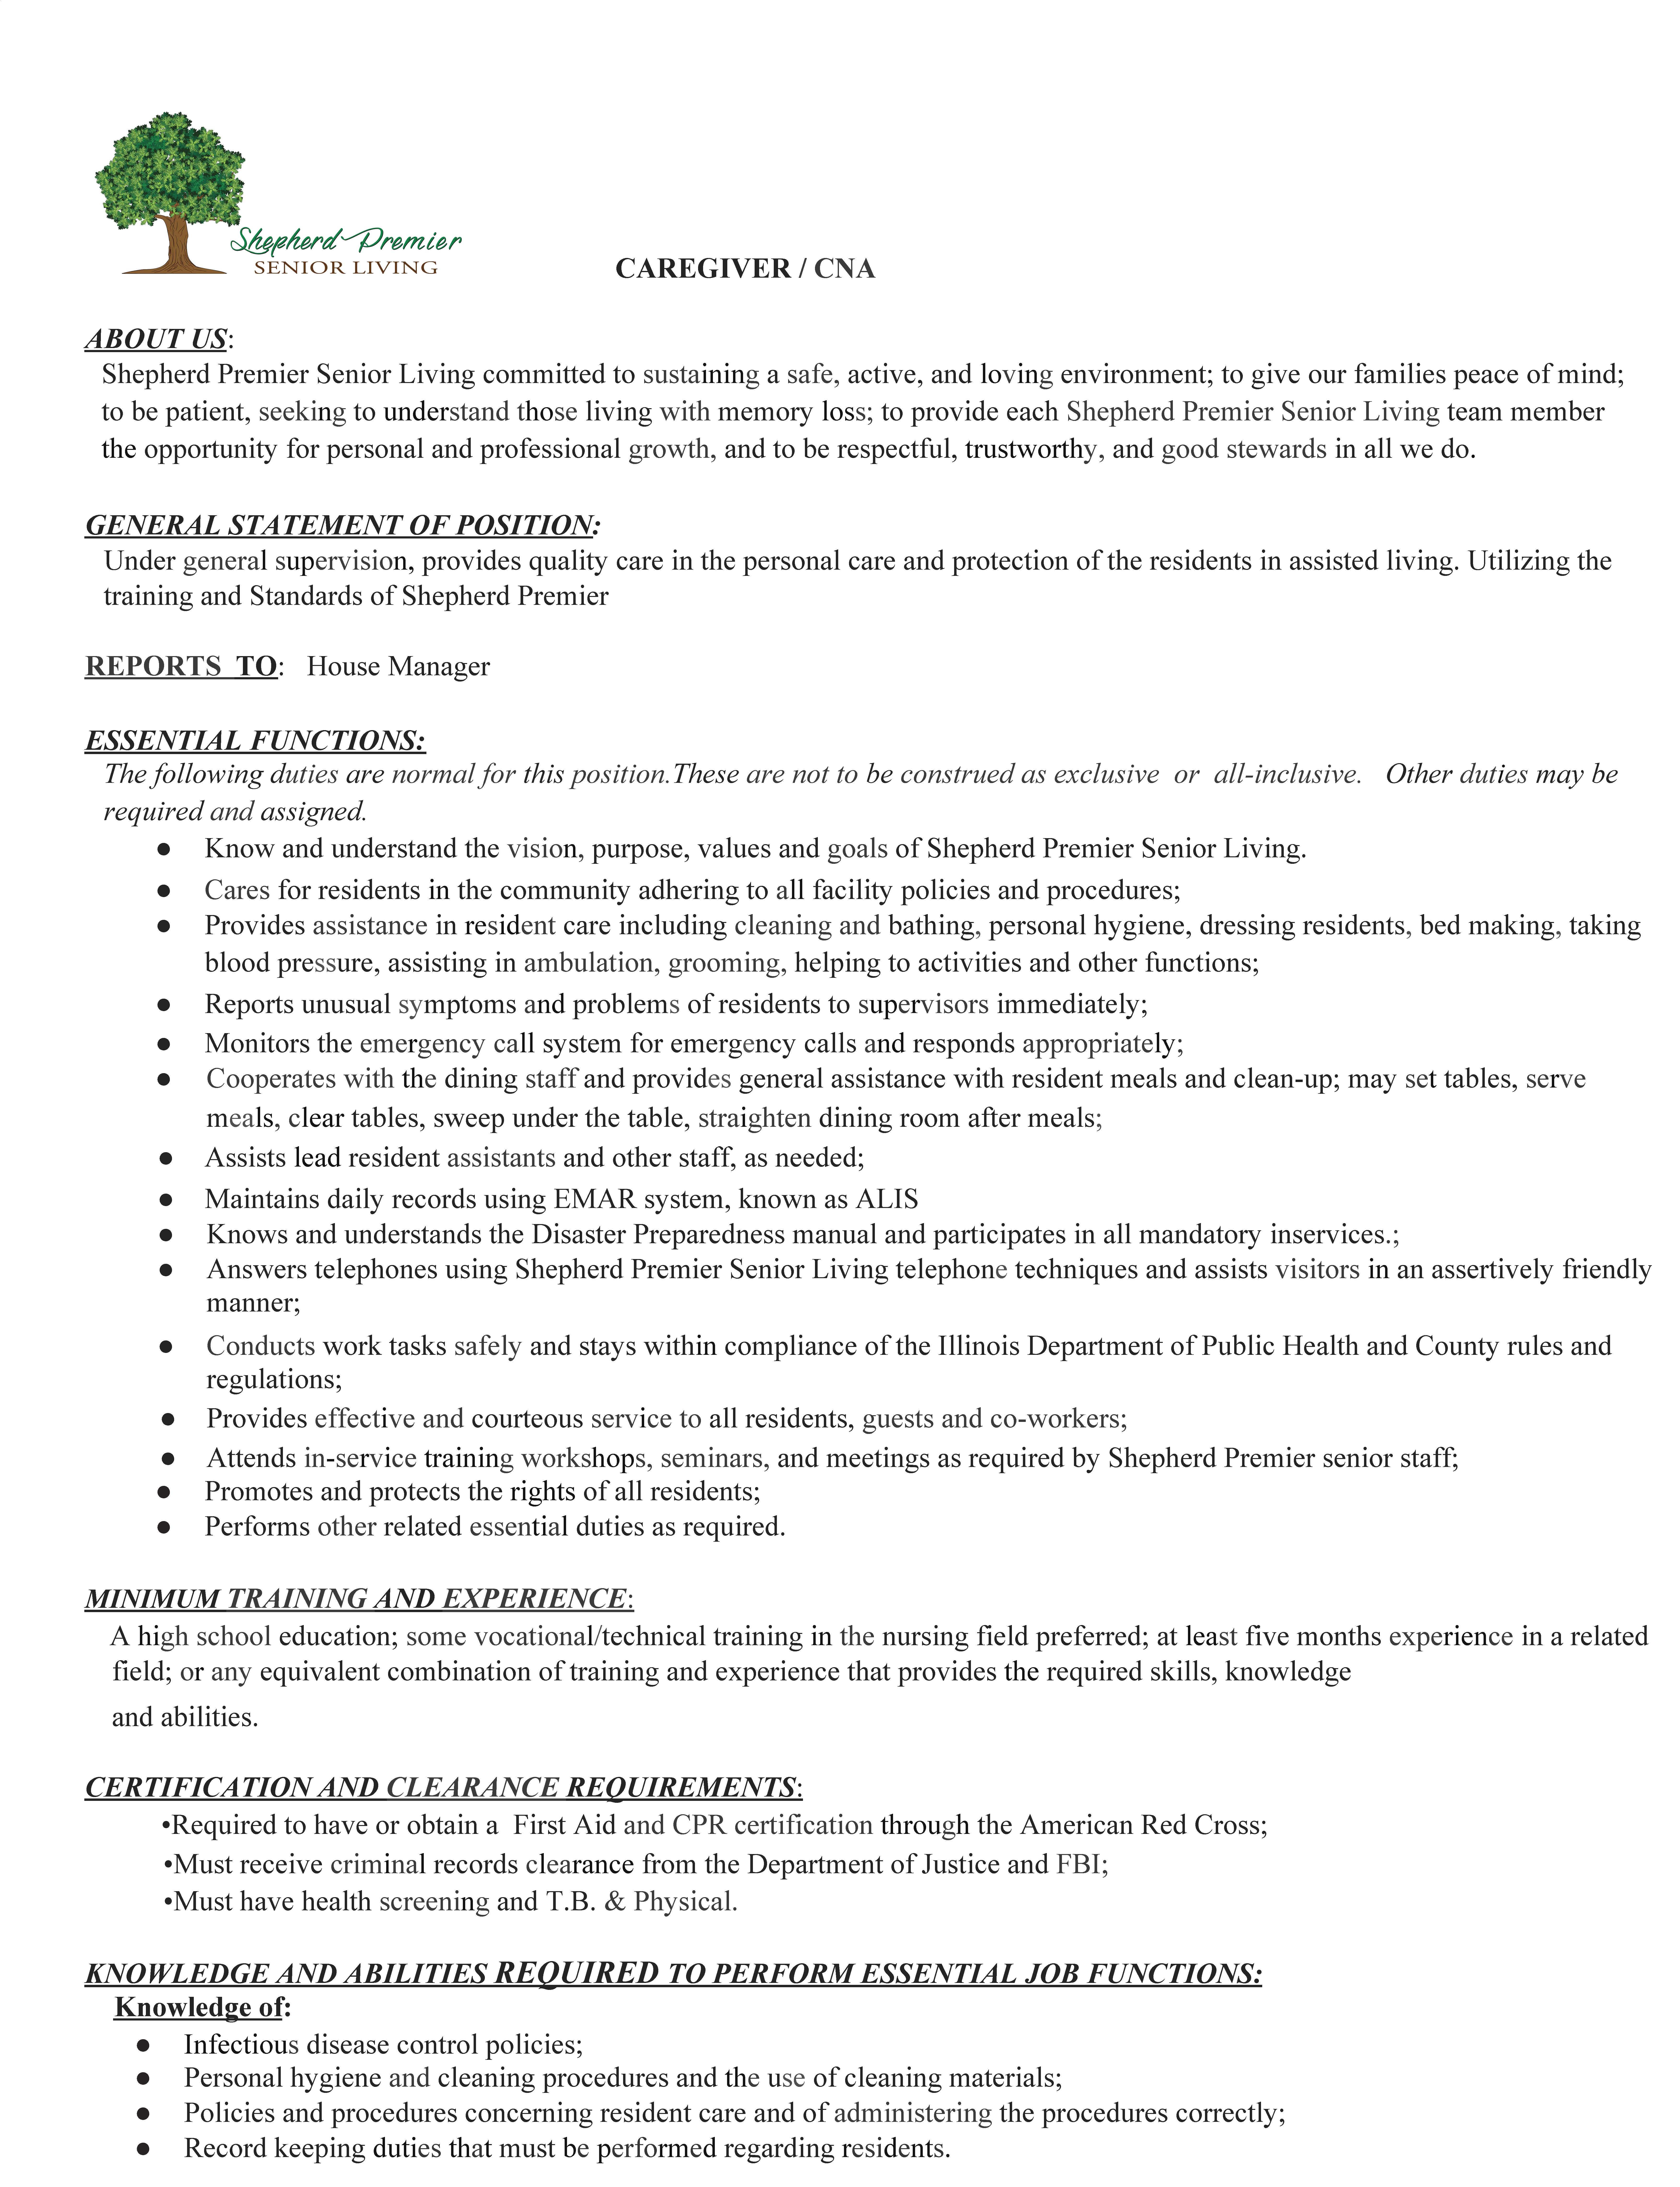 caregiver cna job description 2019_Page_1